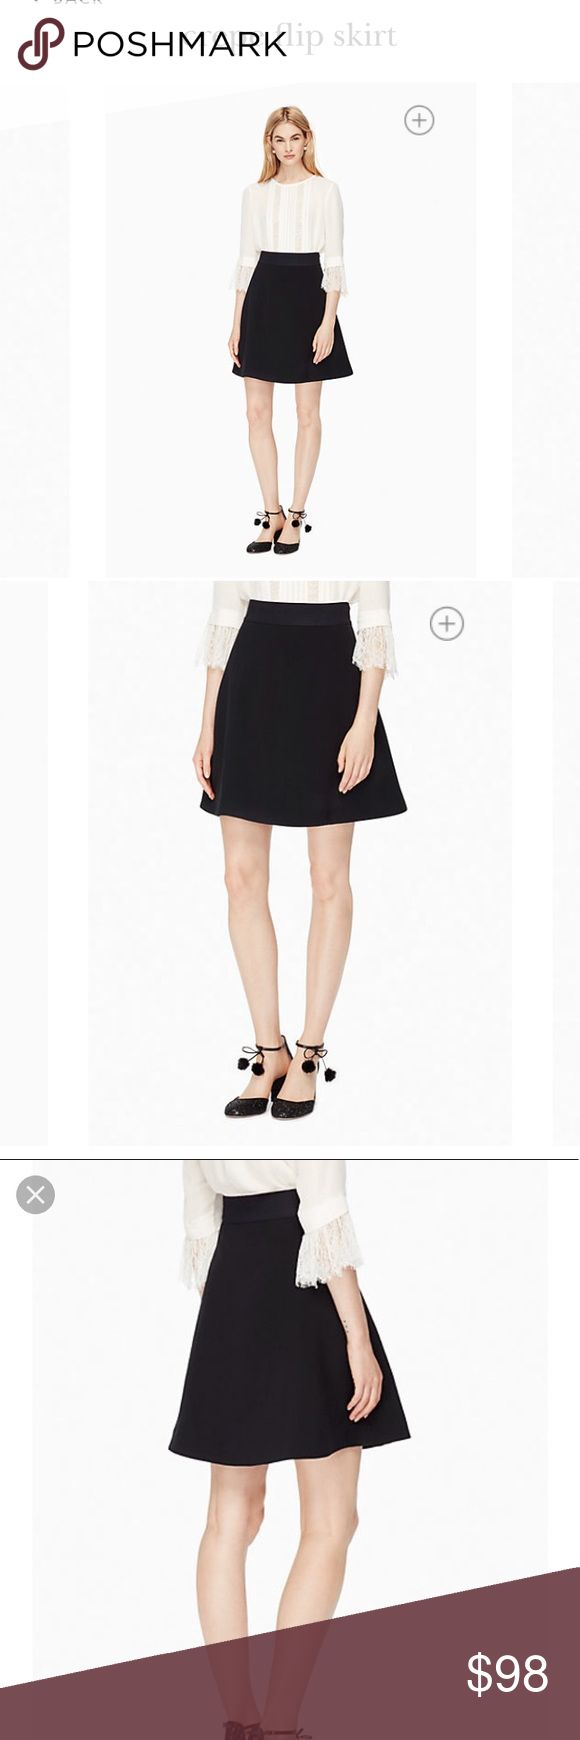 ♠️ Kate Spade crepe flip skirt in black Fun, simple, versatile skirt by Kate Spade! Size 4 with elastic waistband for comfort and great fit. Wear from work to happy hour! See measurements in description!  Brand new, tags attached no damage or flaws! kate spade Skirts Midi